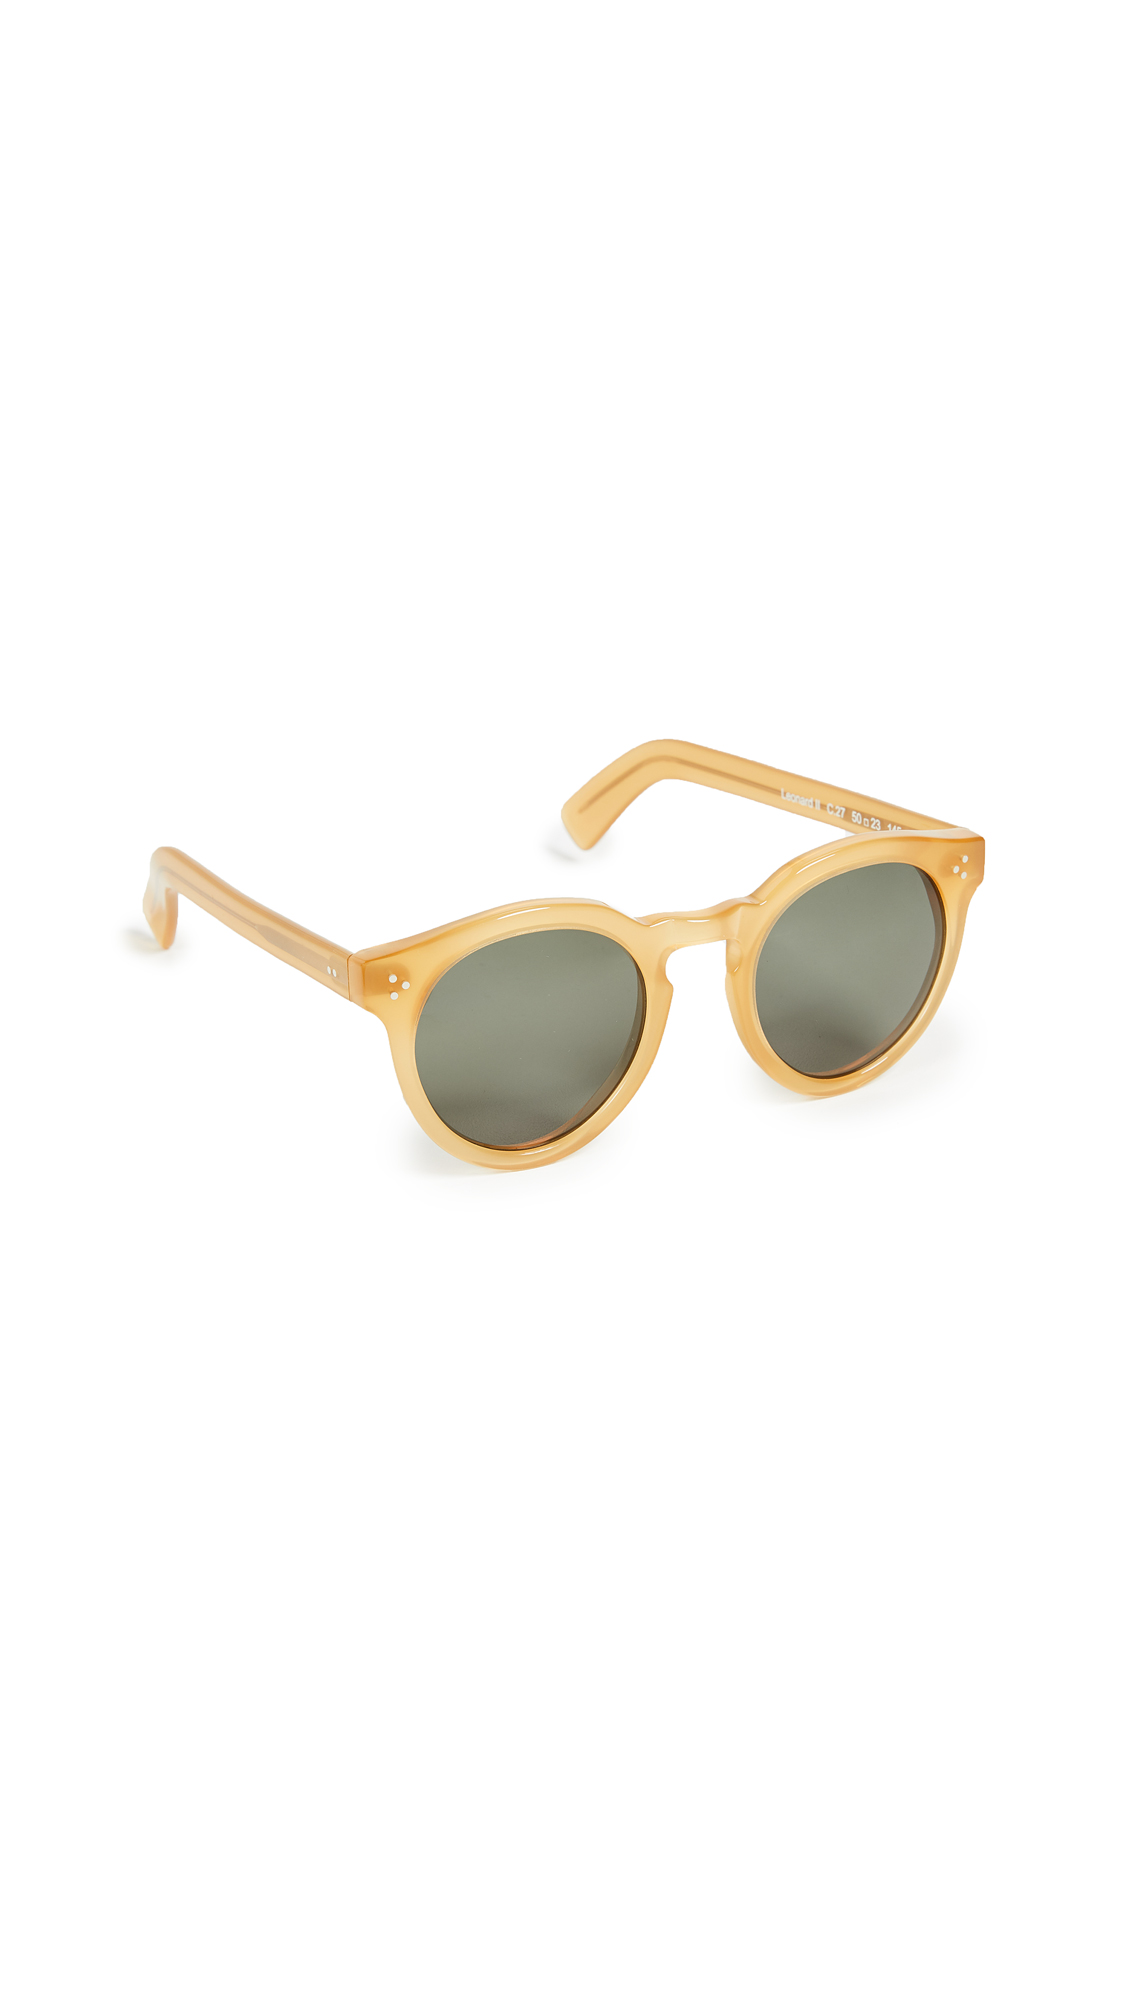 Illesteva Leonard II Sunglasses In Blonde/Olive